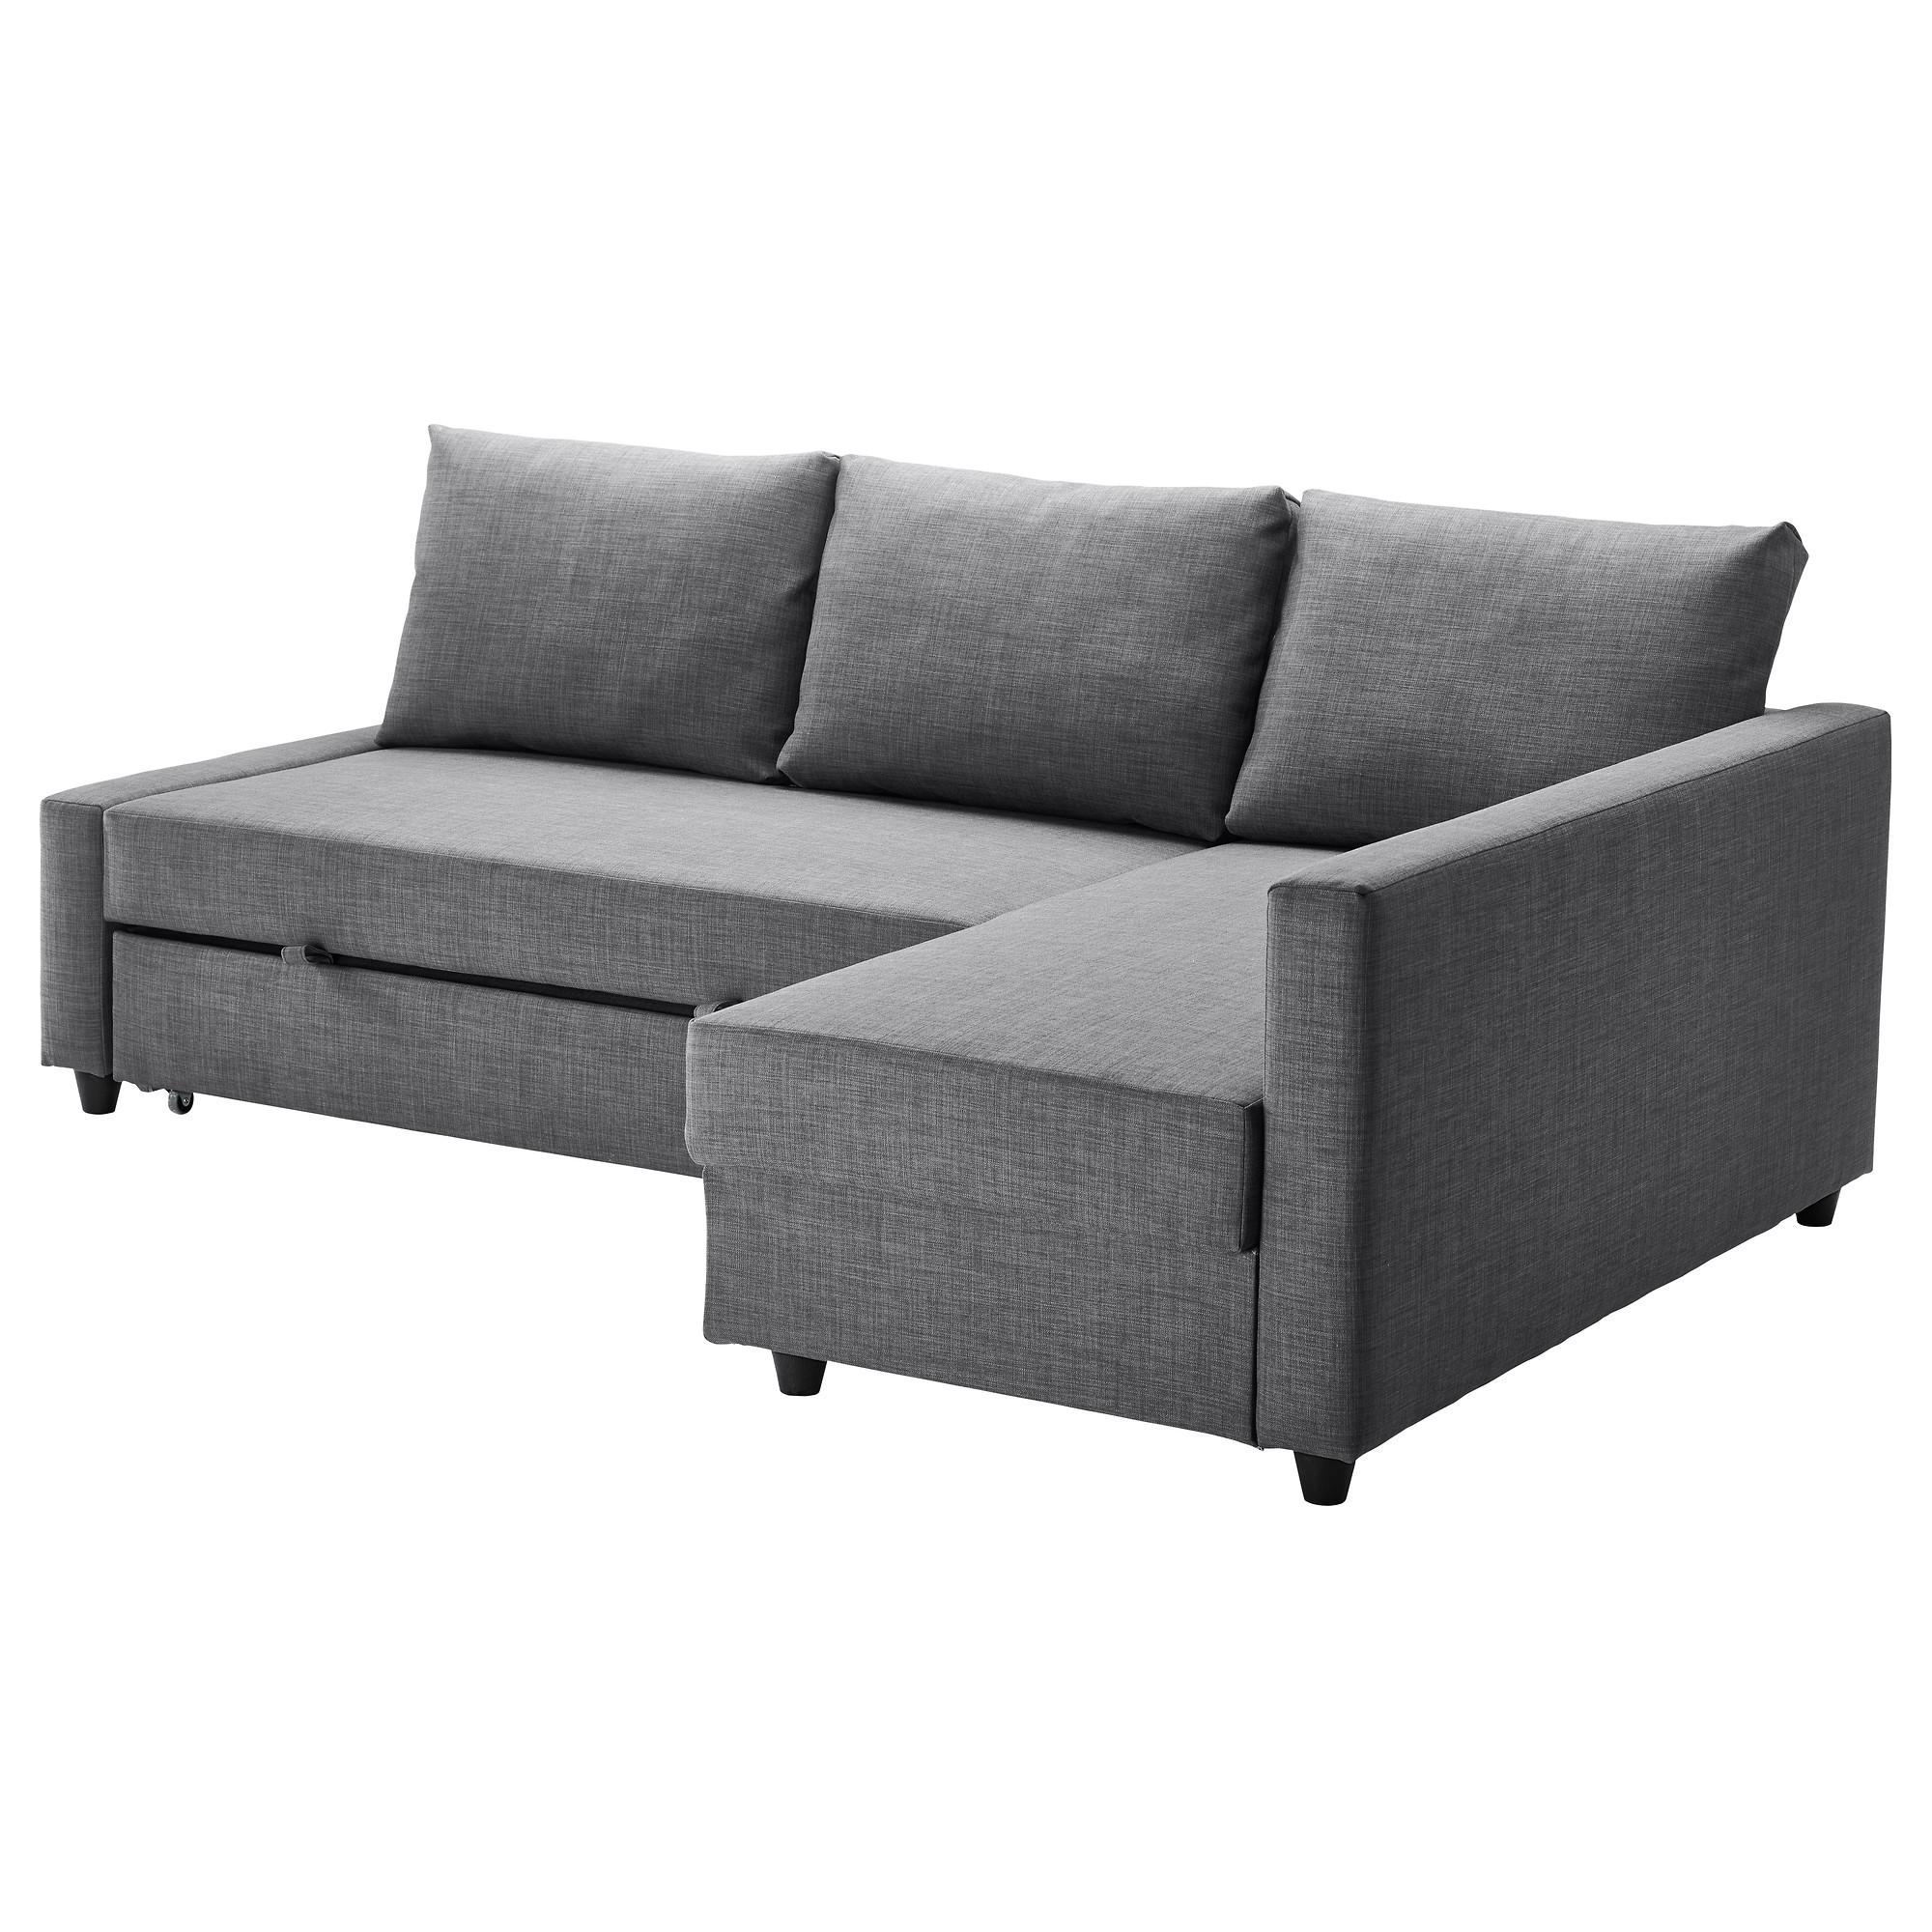 sports shoes bff43 da456 FRIHETEN Corner sofa-bed with storage, Skiftebo dark gray